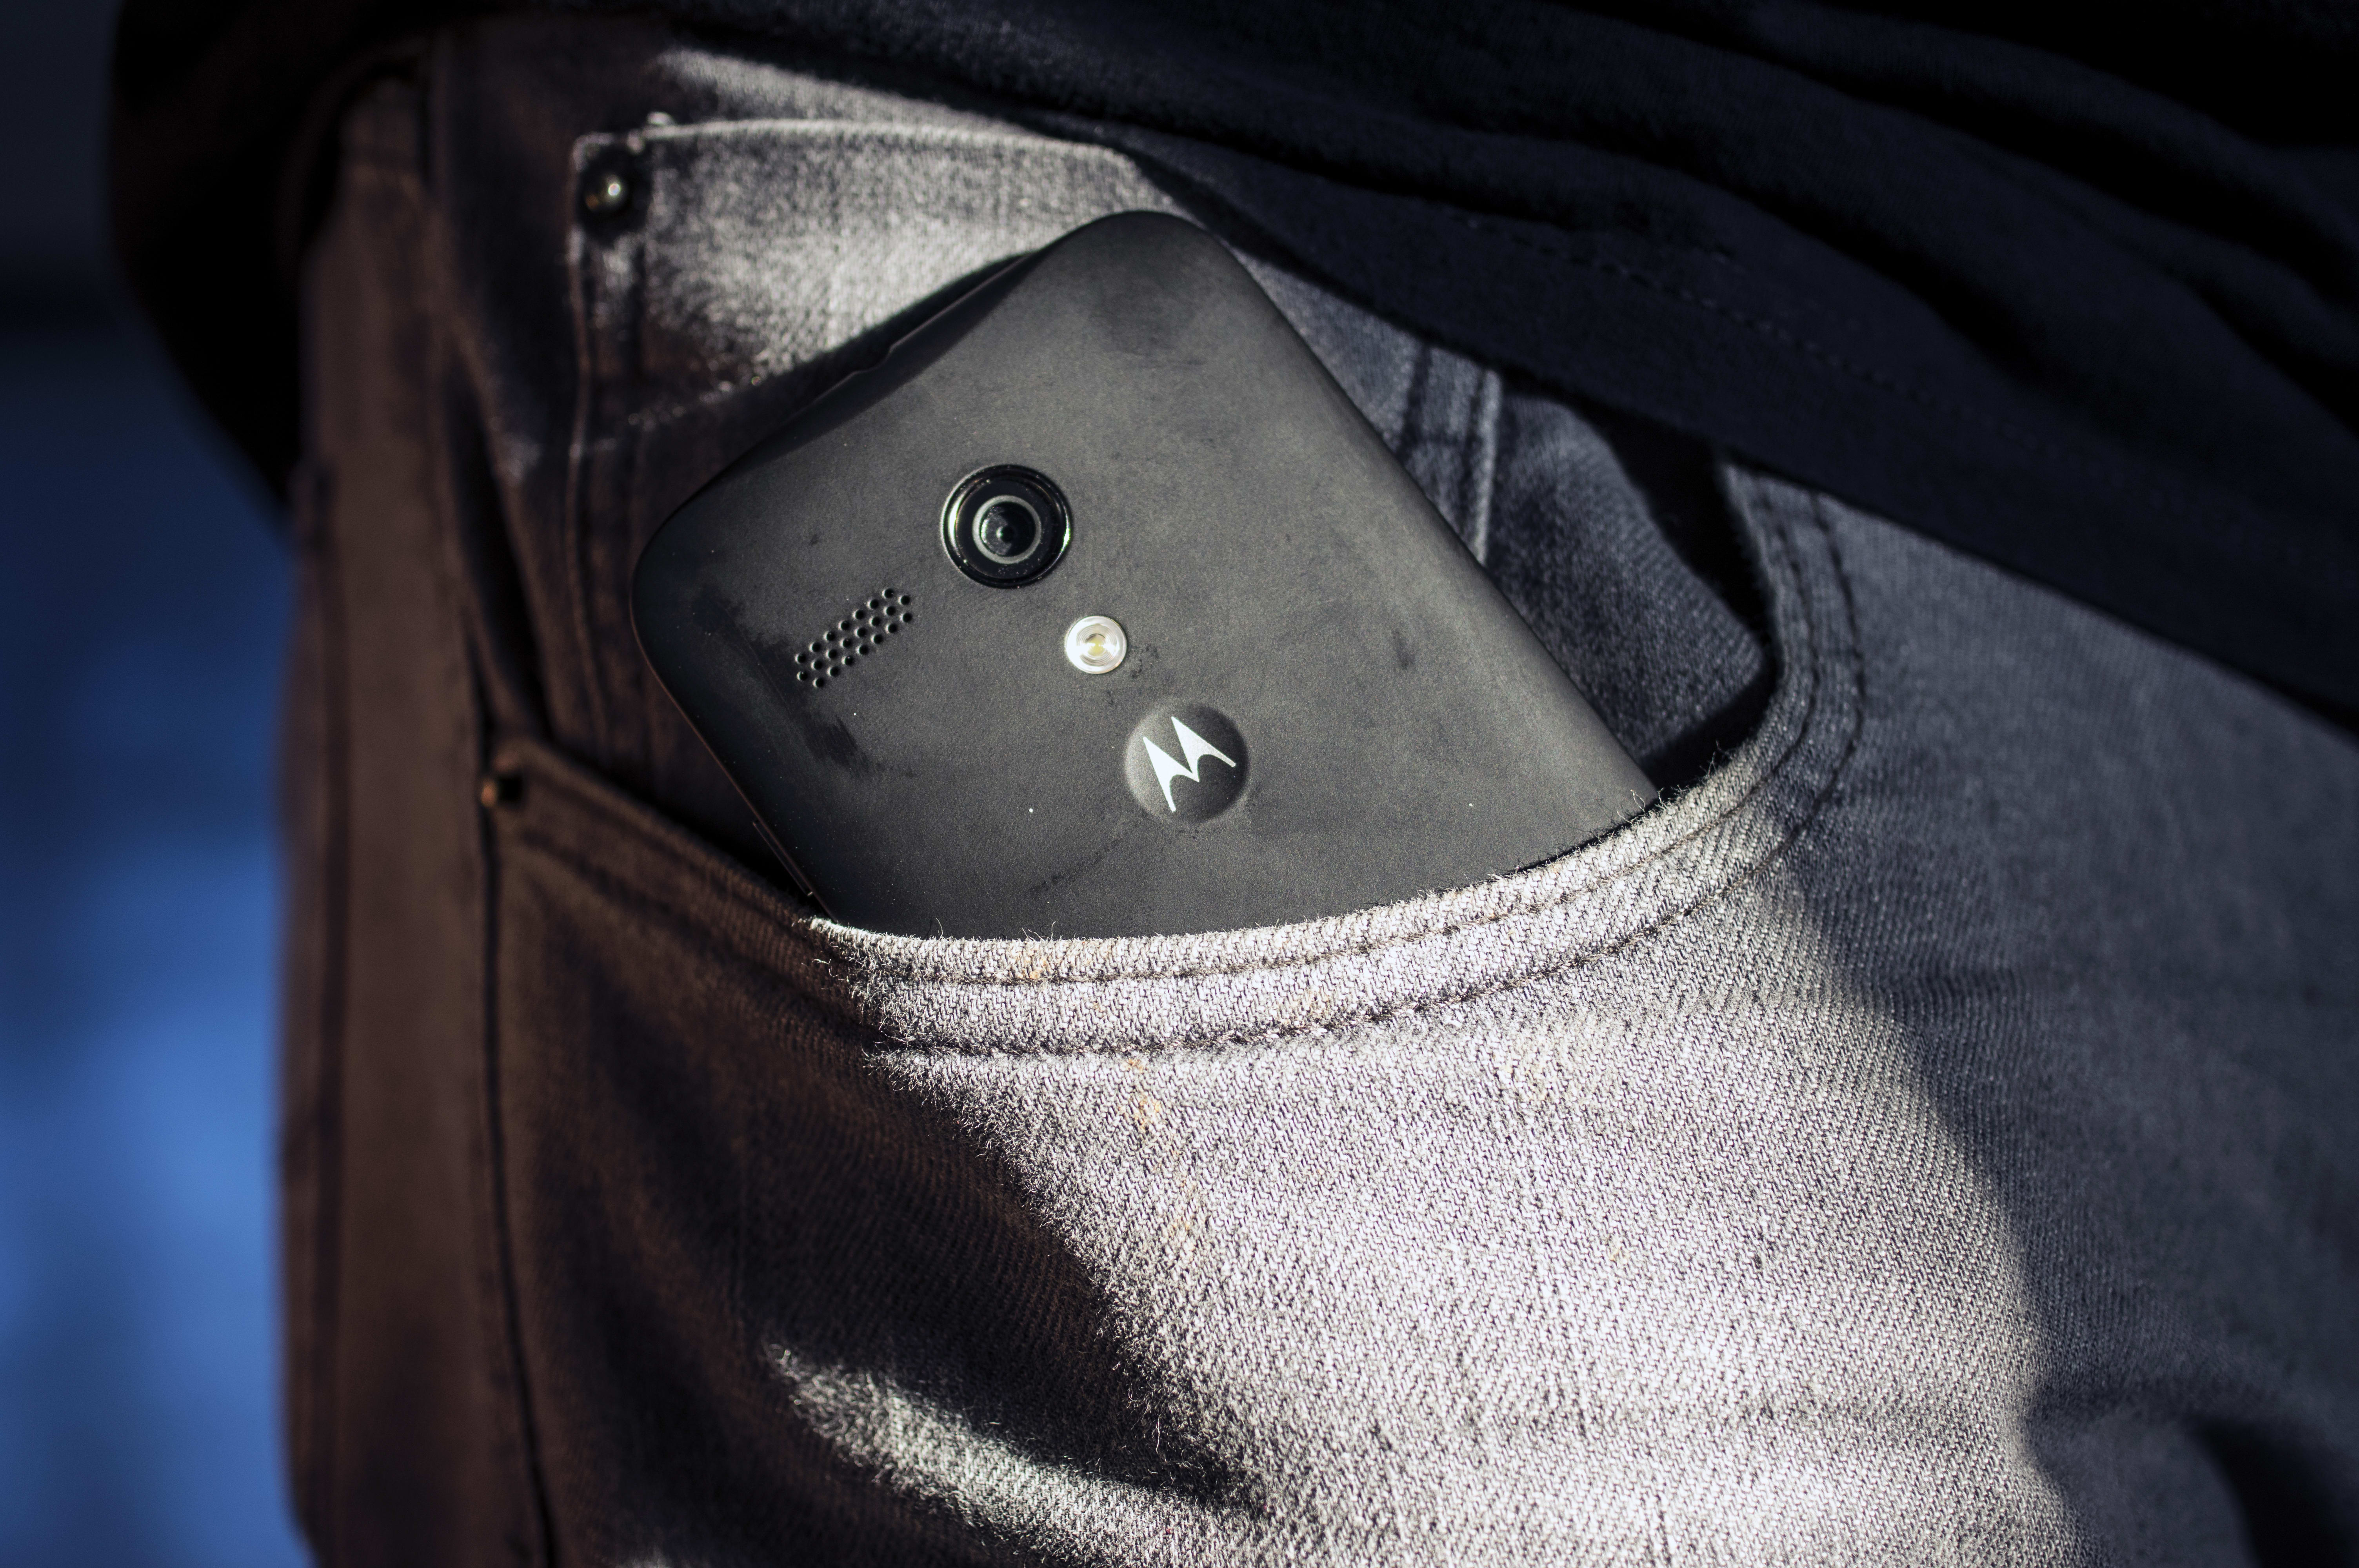 A photo of the Motorola Moto G with 4G LTE in a pocket.